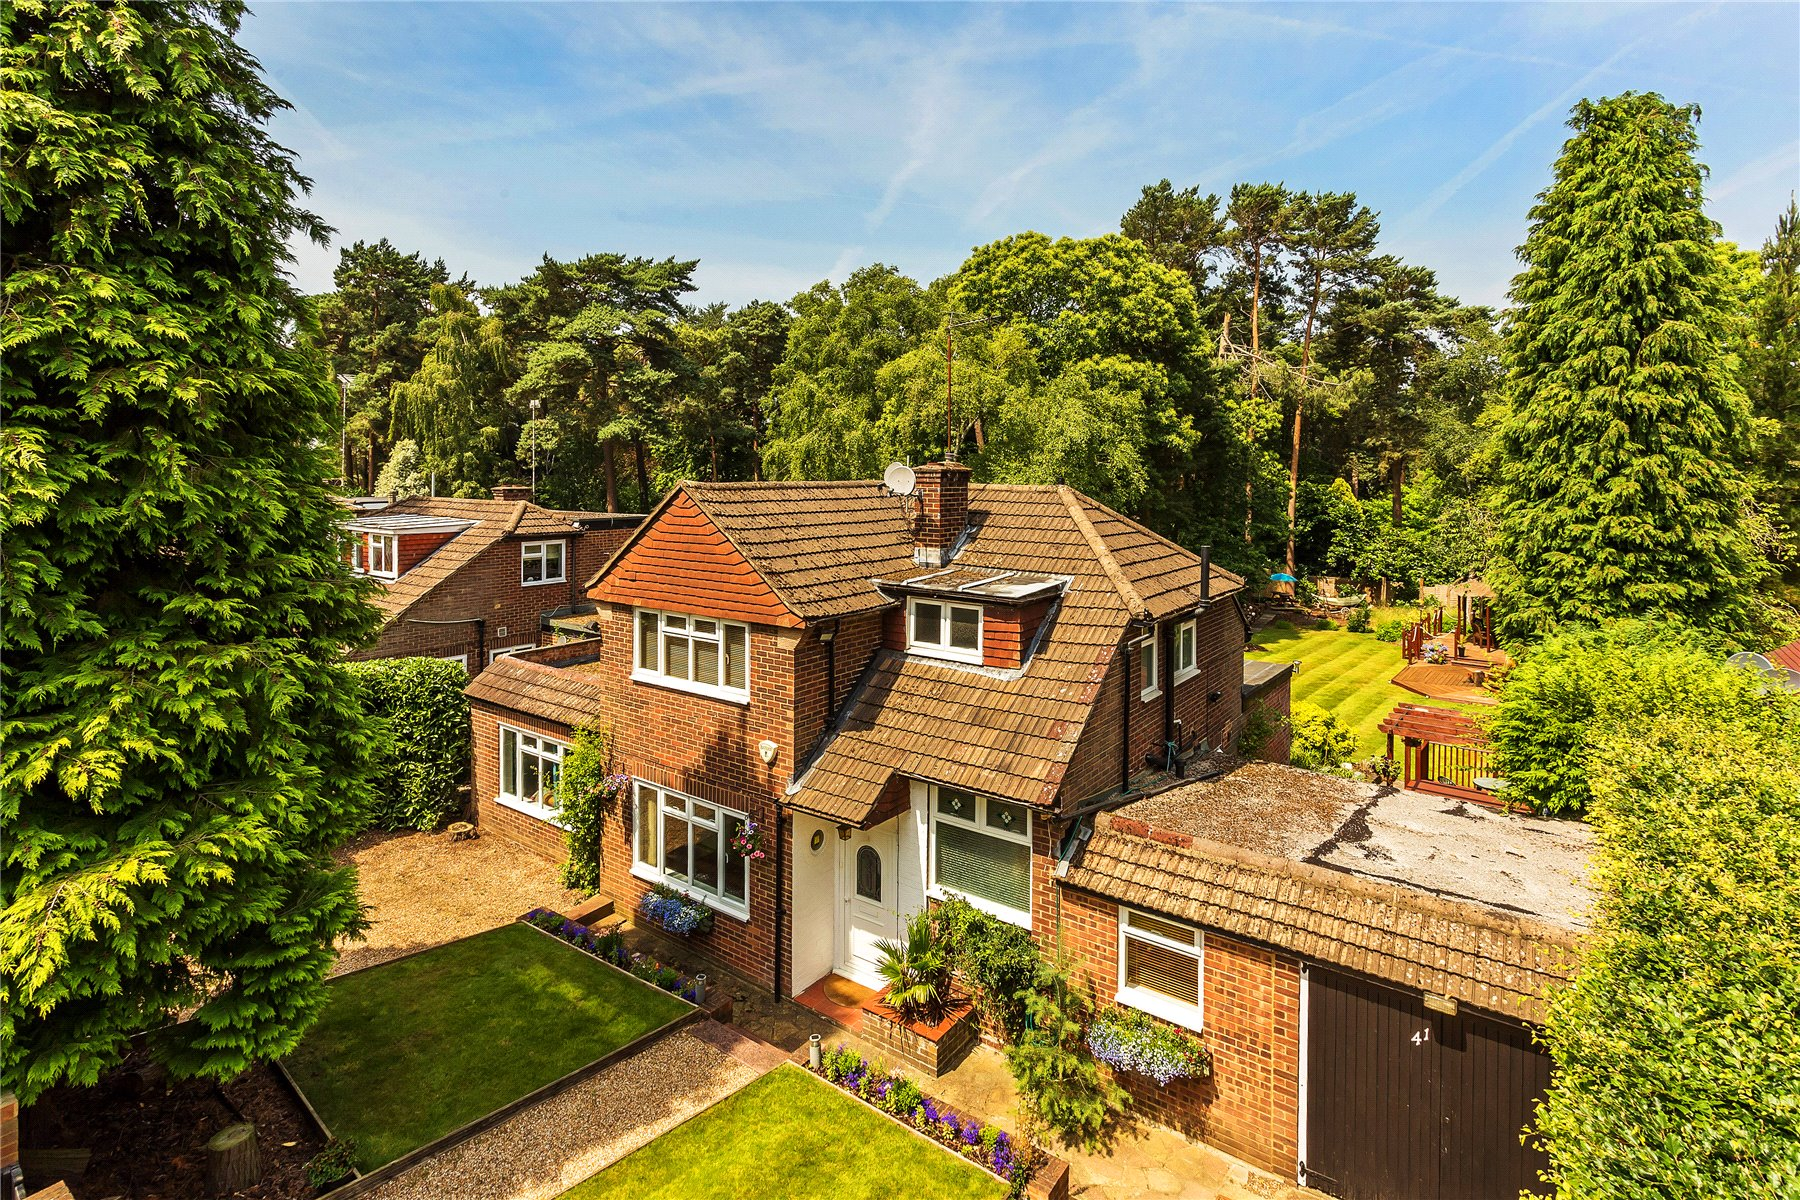 4 Bedrooms Detached House for sale in Pine Tree Hill, Pyrford, Surrey, GU22